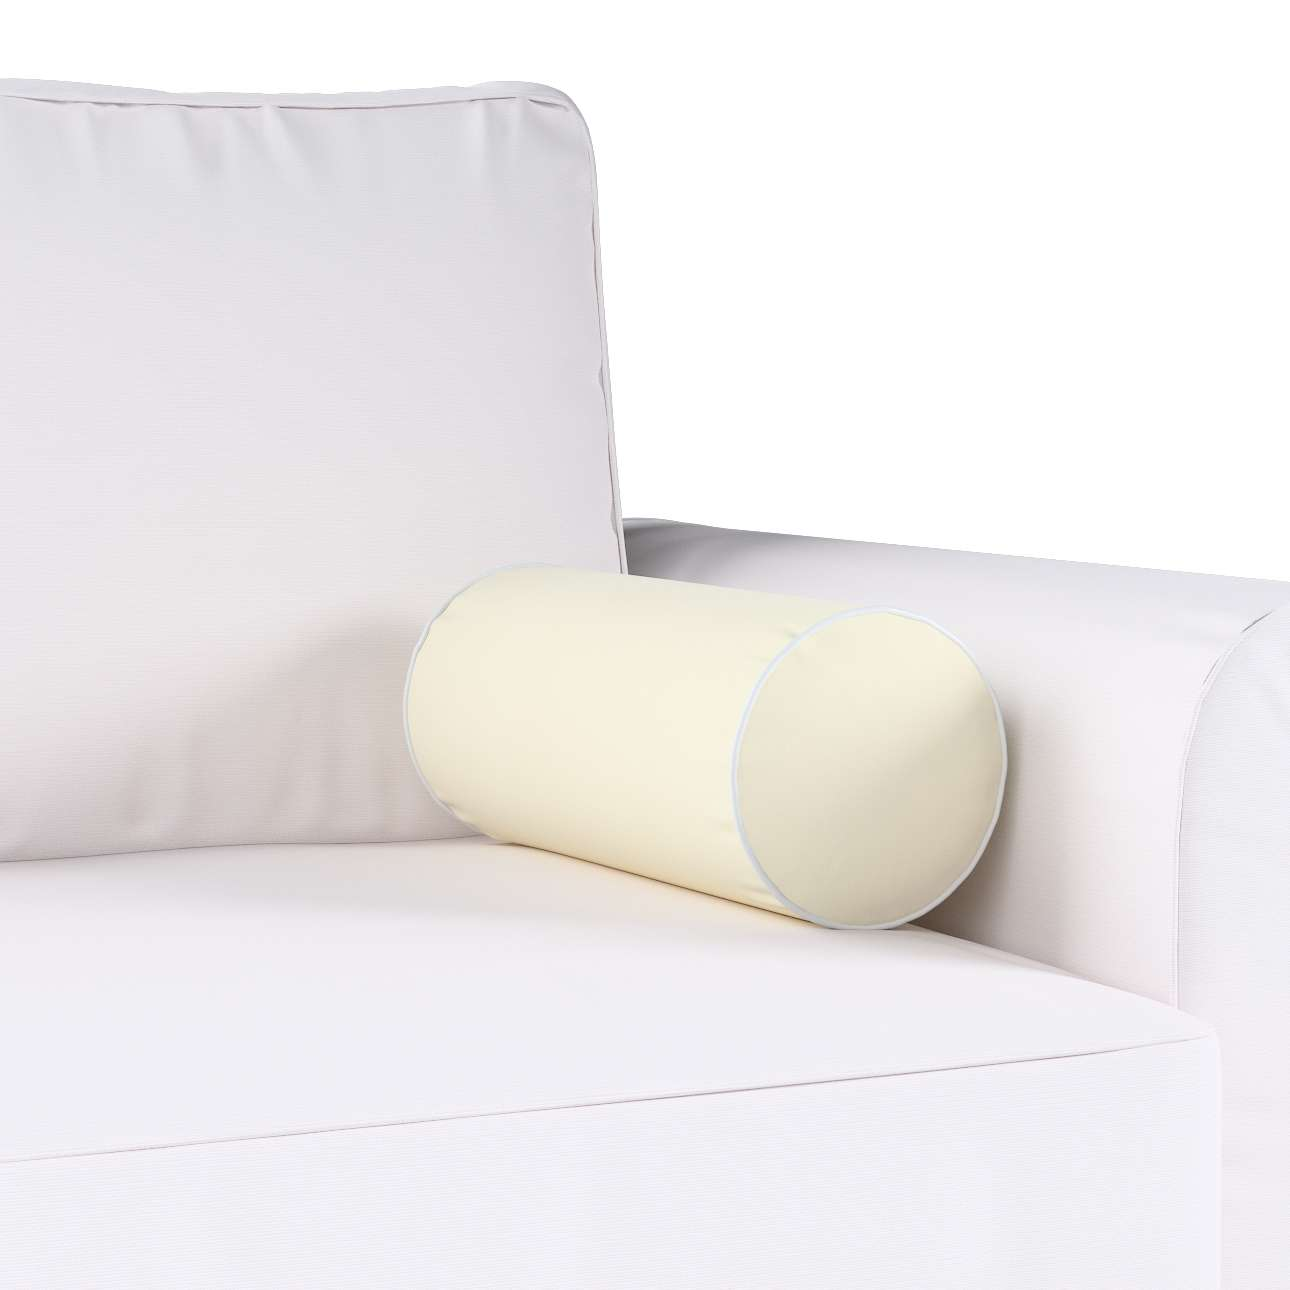 Velvety bolster with piping in collection Velvet, fabric: 704-10